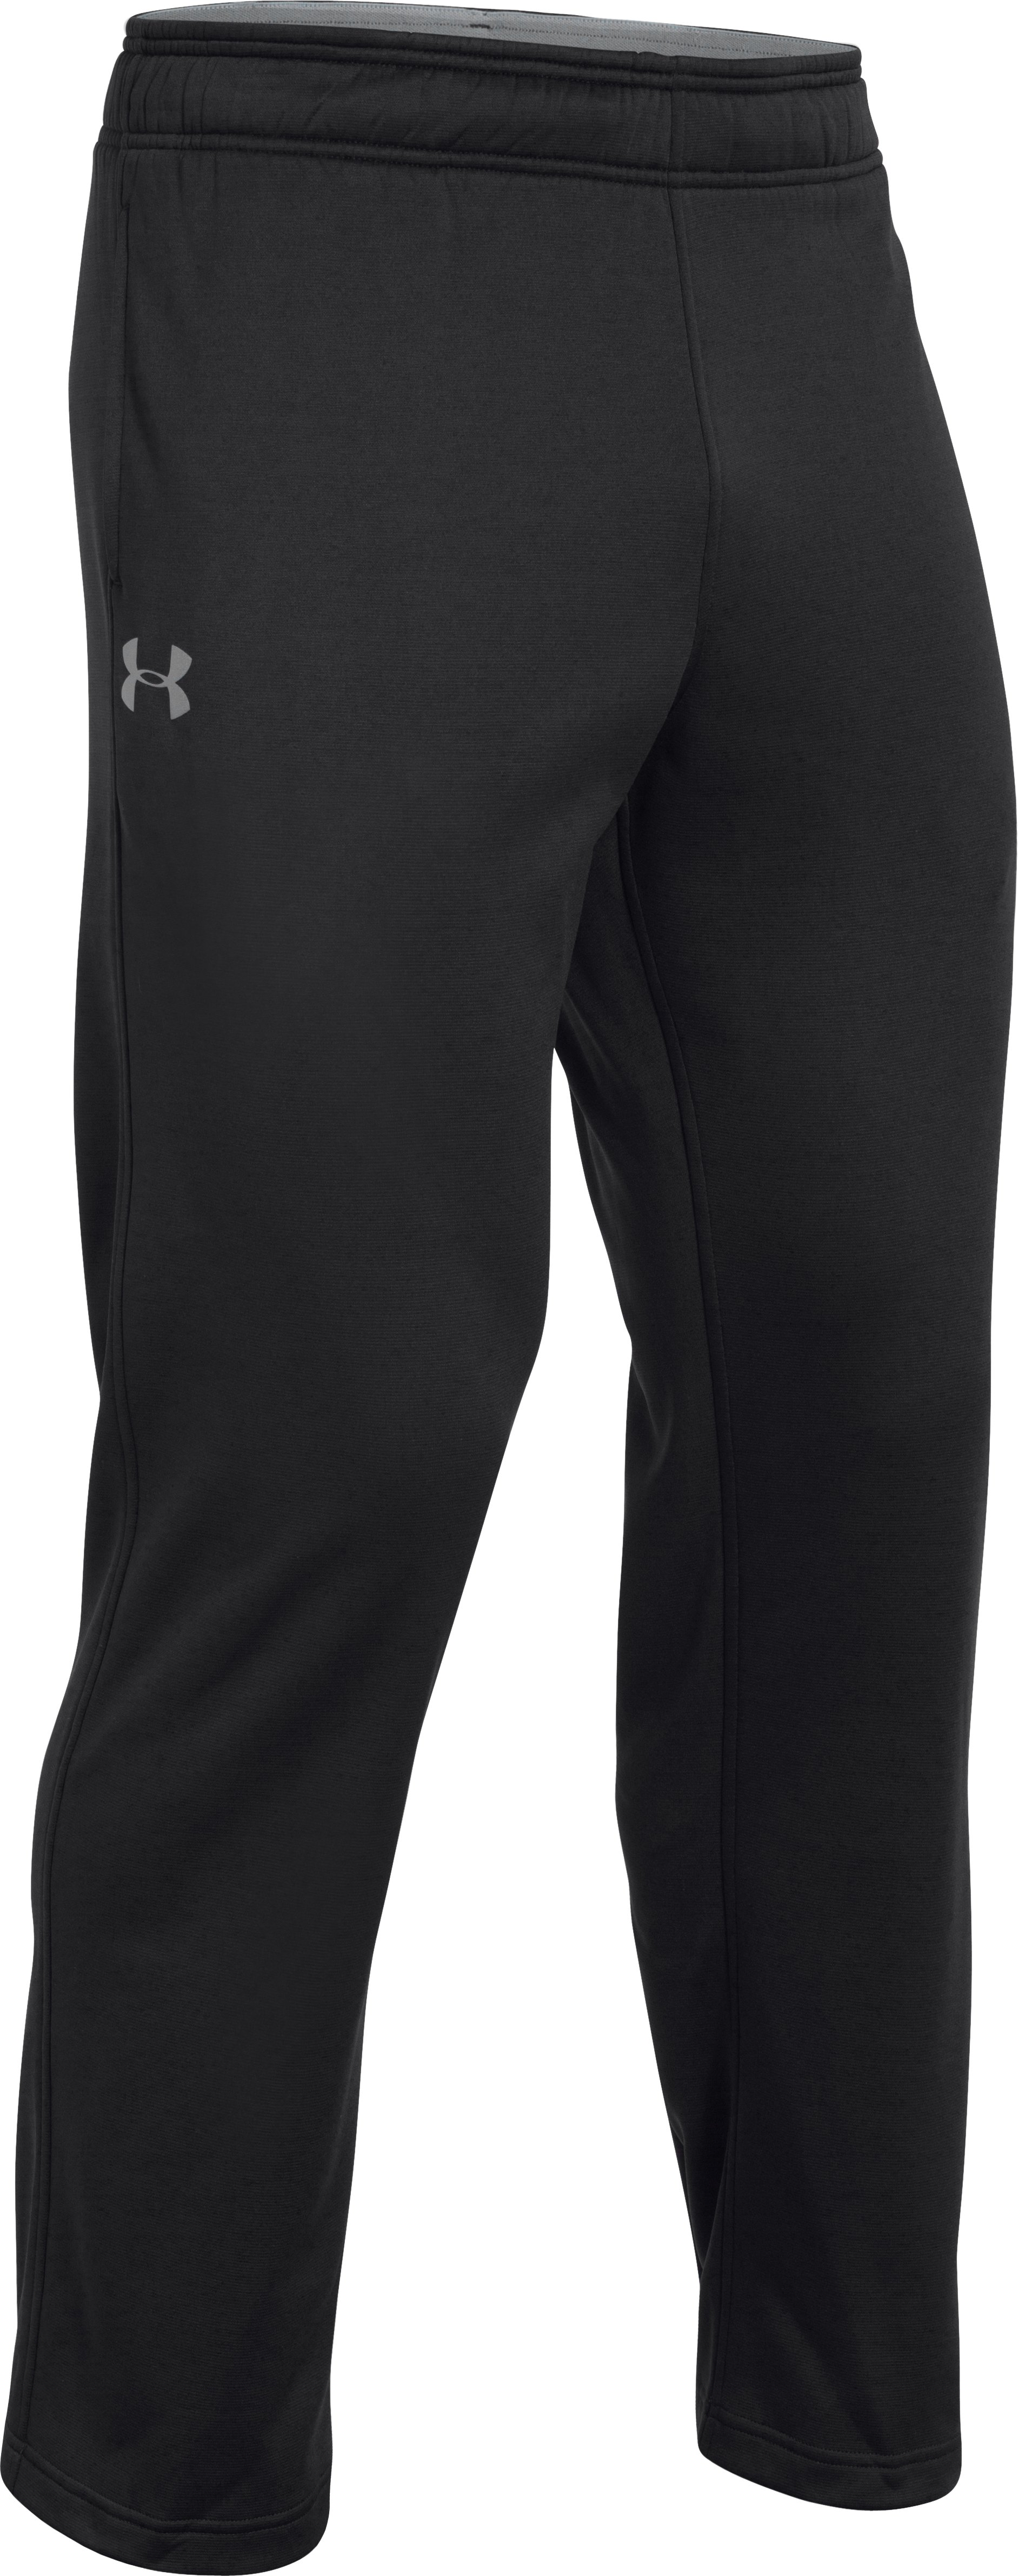 Men's Armour Fleece® In The Zone Pants, Black , undefined